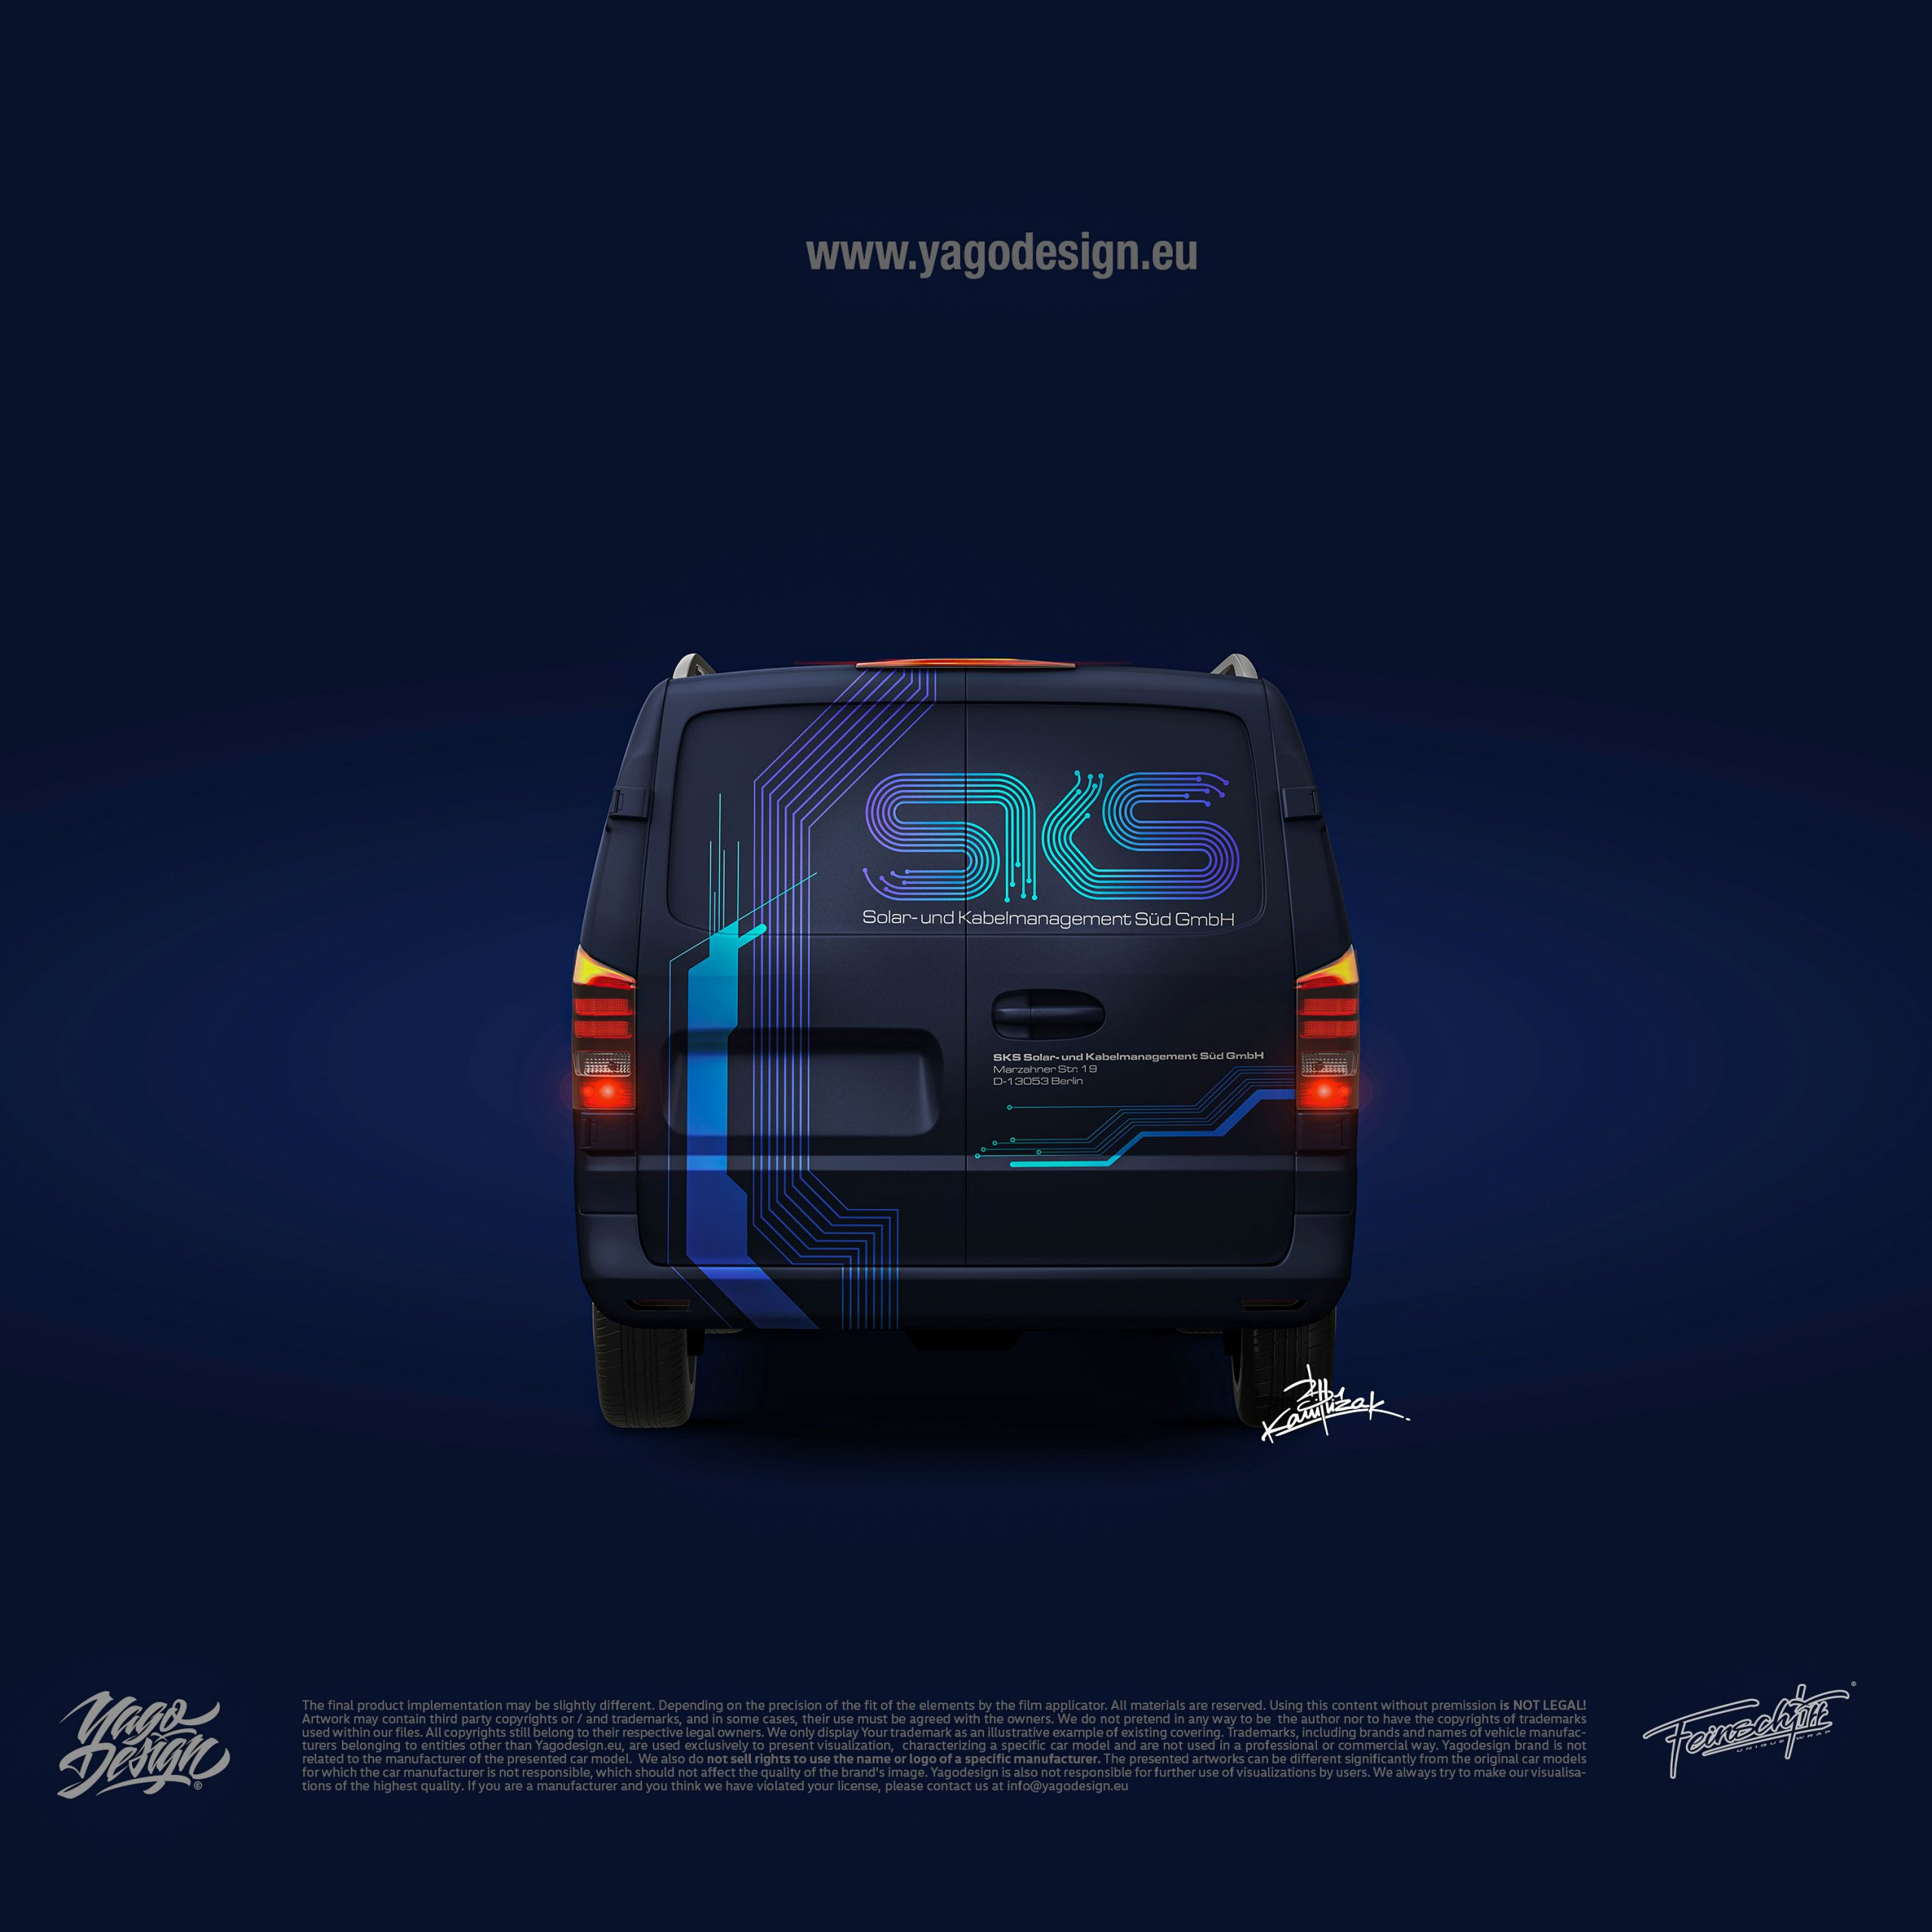 Mercedes-Benz-Vito-Panel-Van-by-Yagodesign-Automotive-Design-Studio-Rear-View-scaled